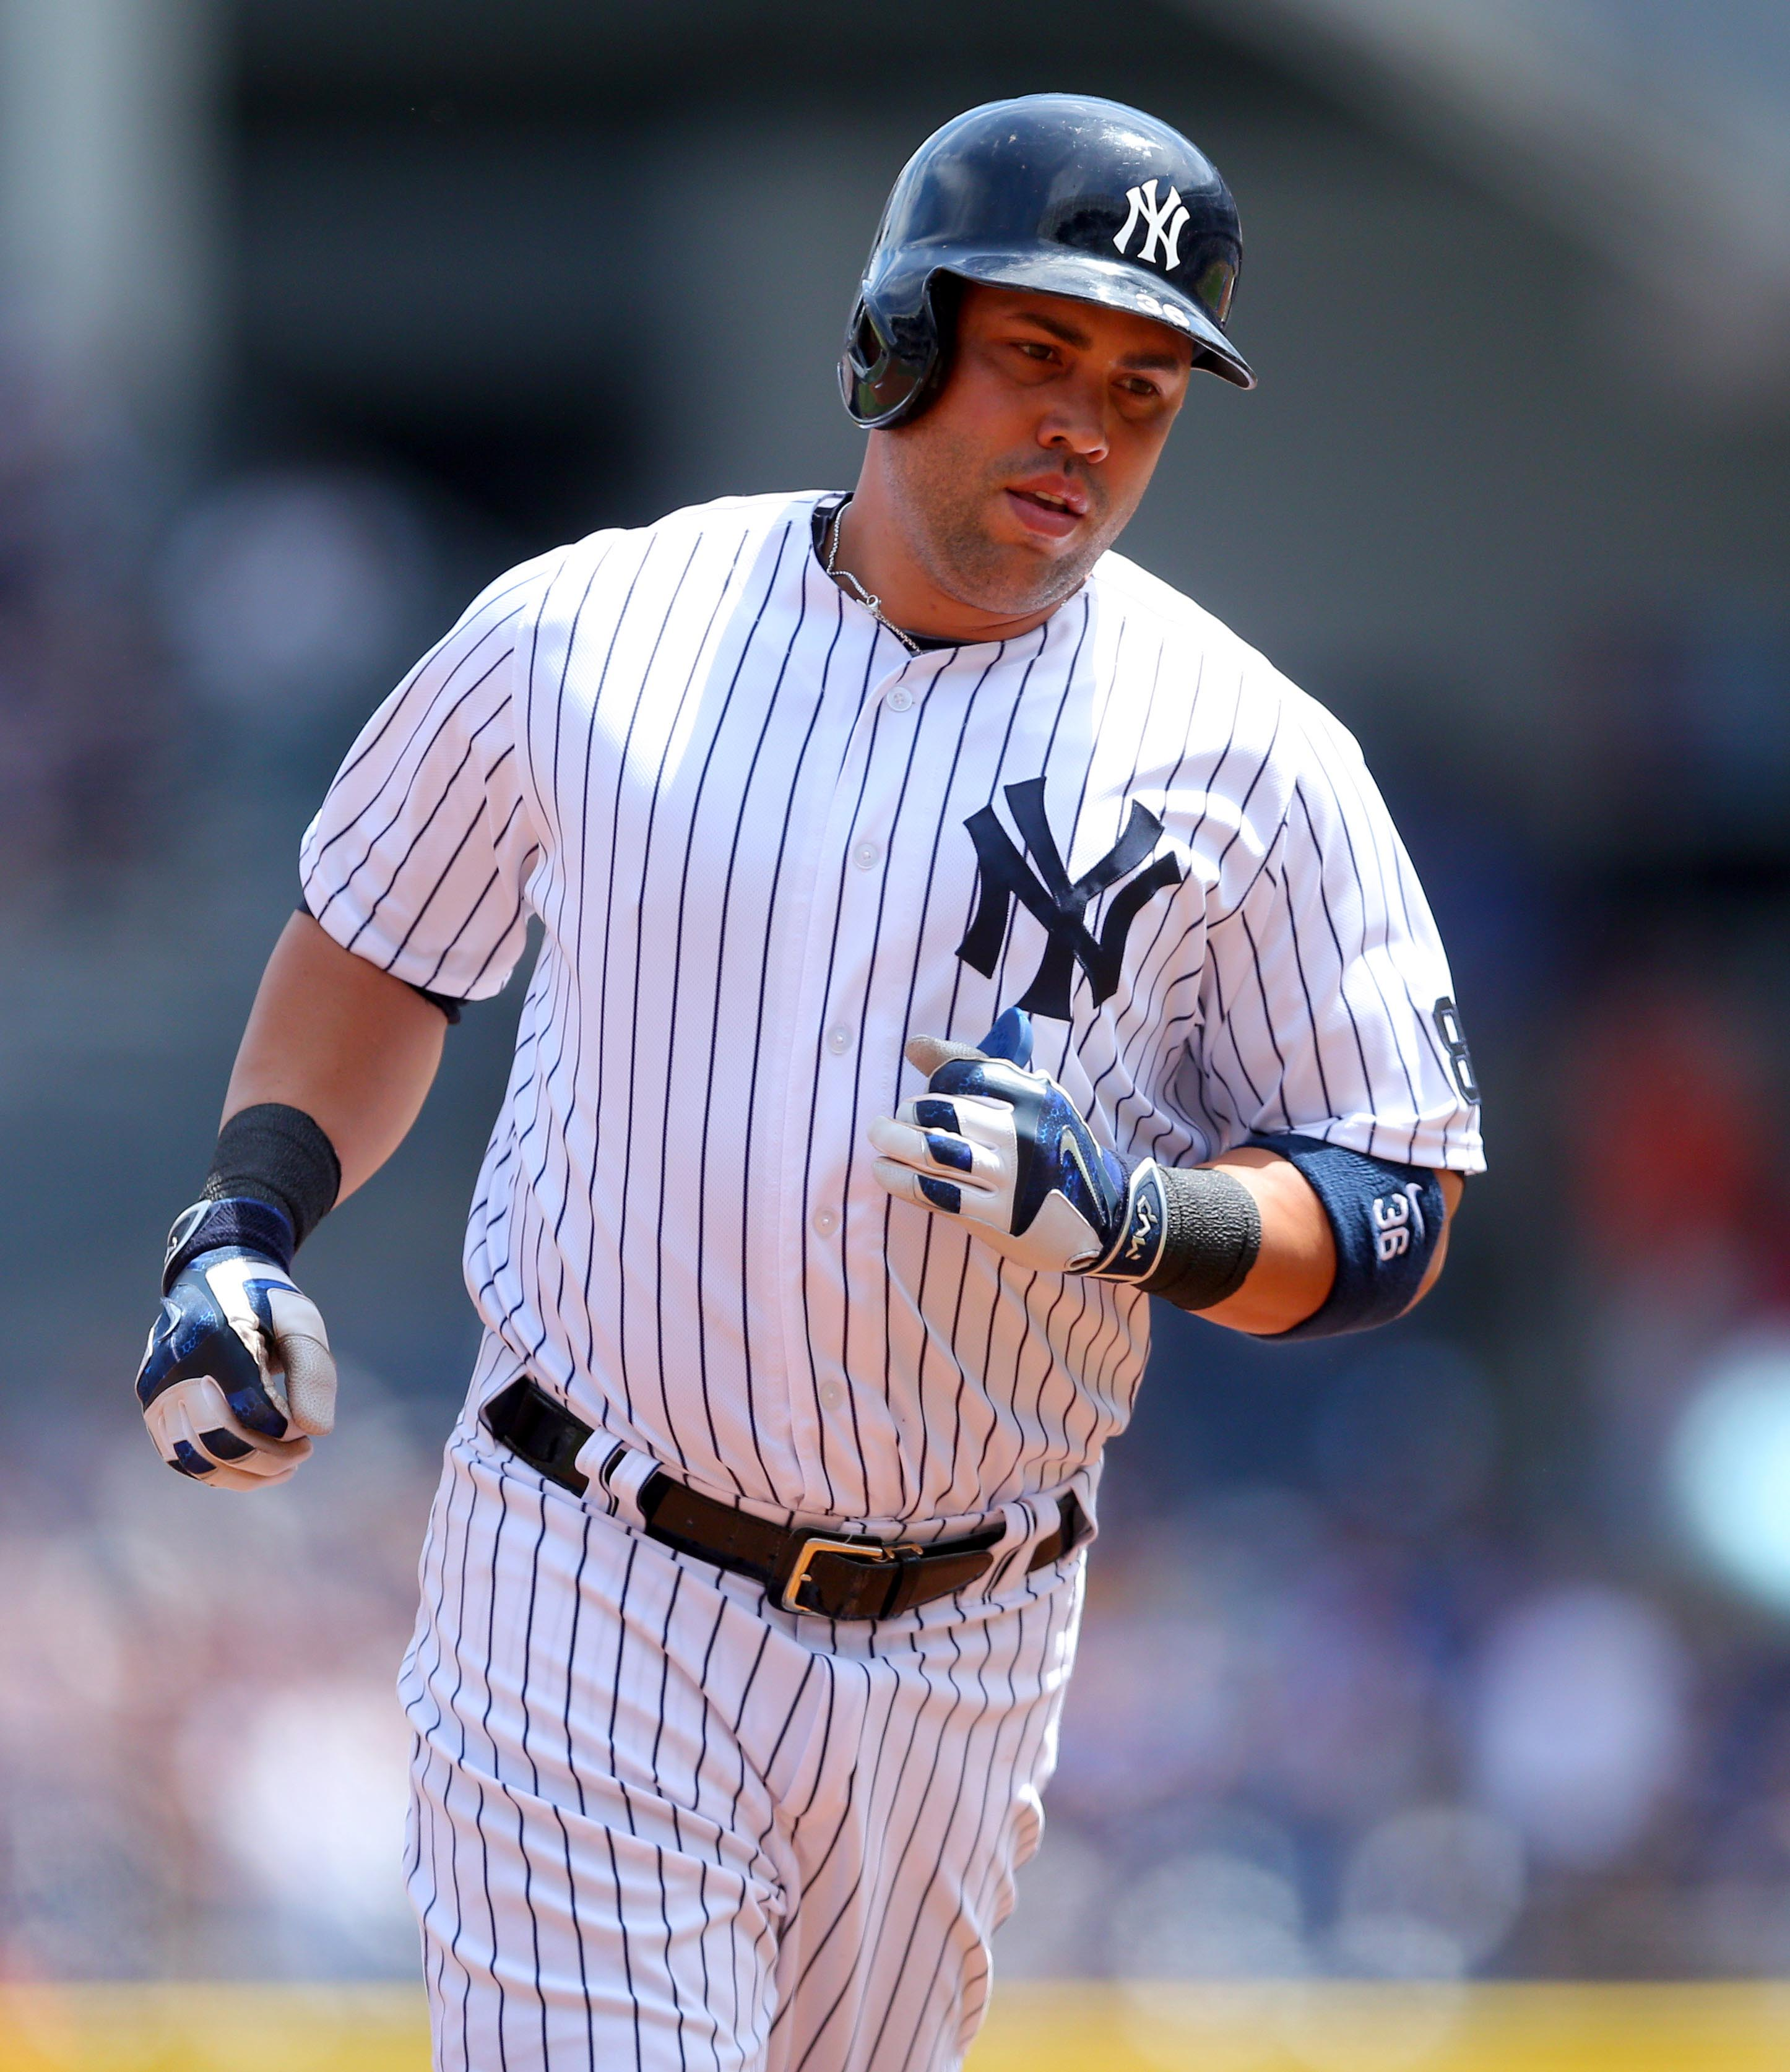 Carlos Beltran Bleacher Report Latest News Videos And